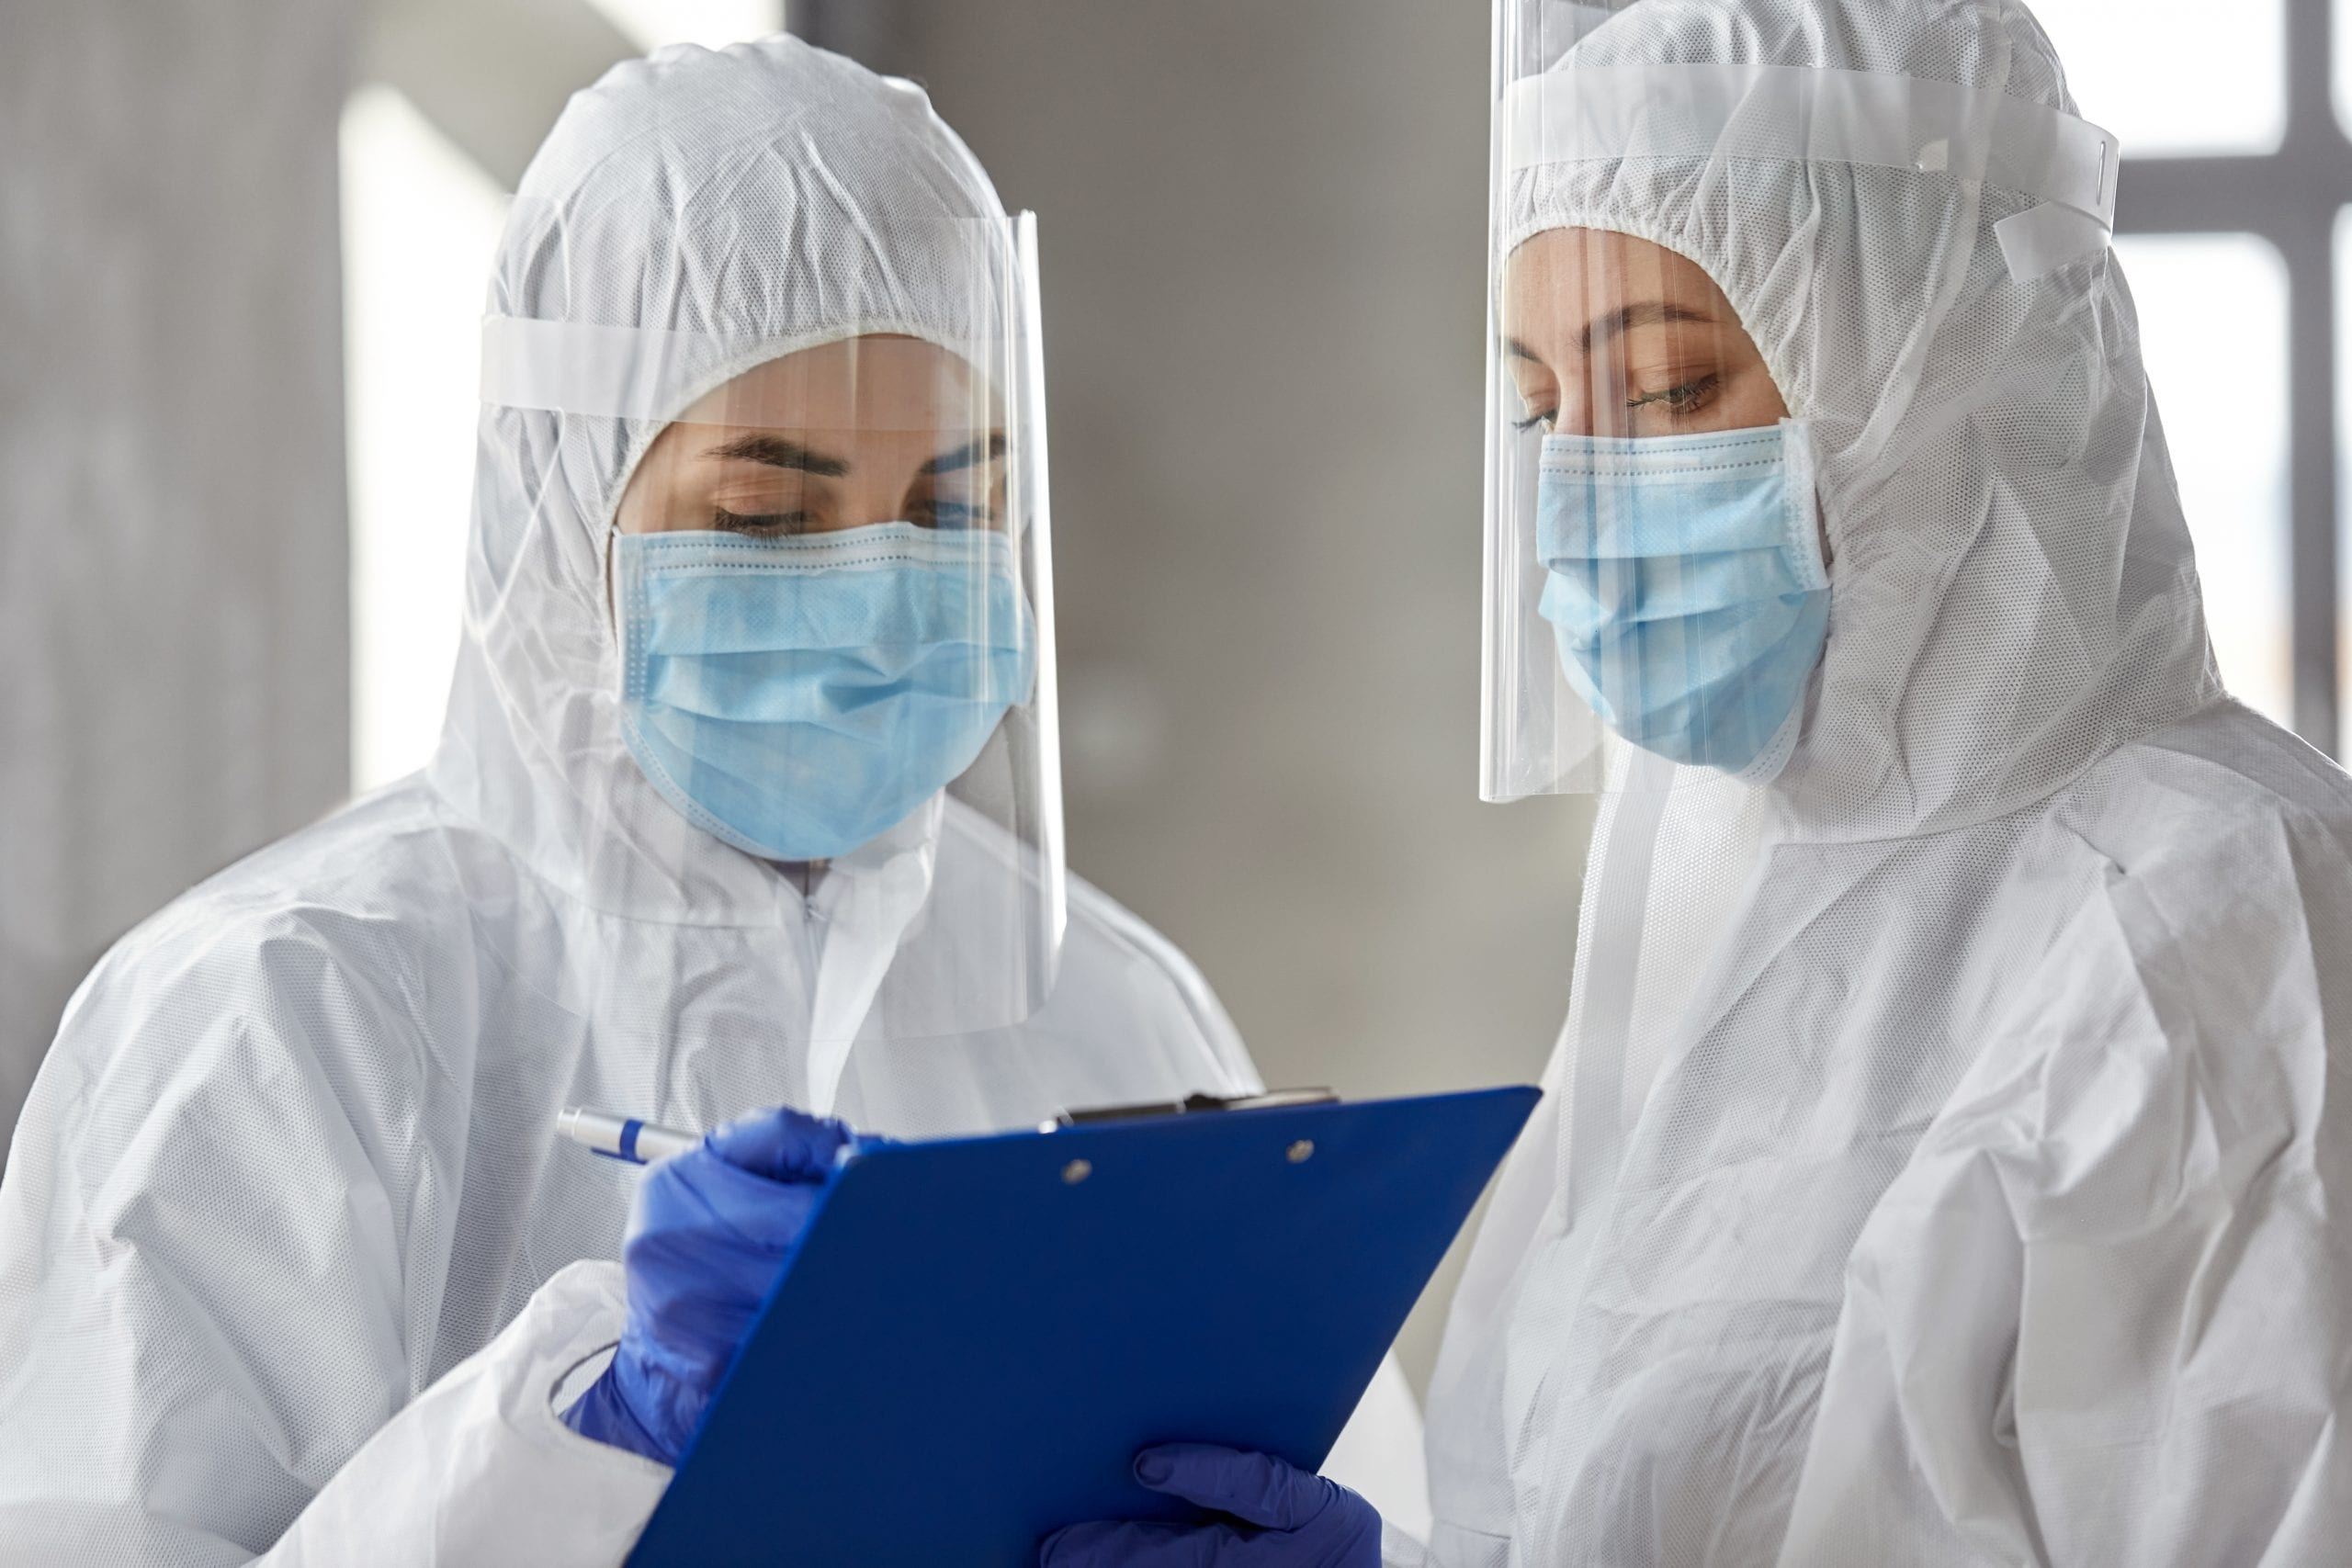 health safety, medicine and pandemic concept - female doctors or scientists in protective wear, medical masks, gloves and face shields for protection from virus disease with clipboard